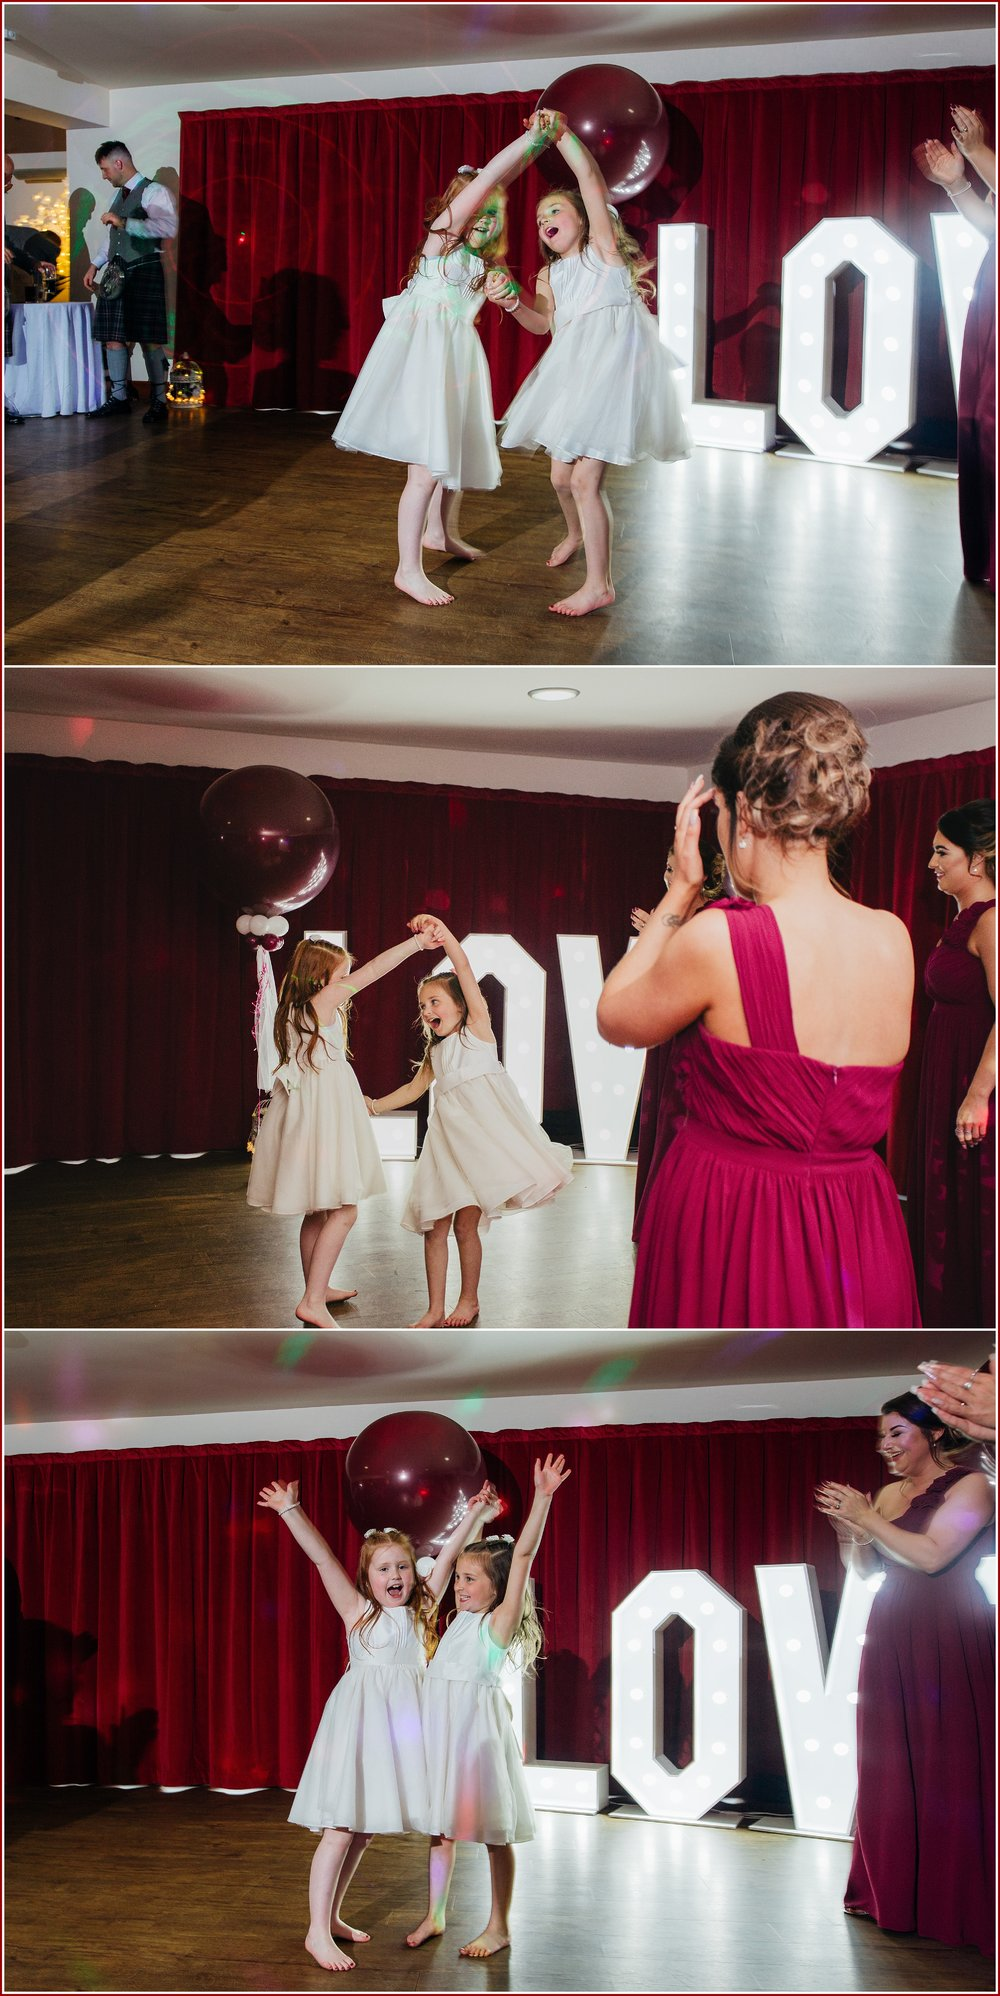 Kirsty_Brown_Wedding_Photography_0120.jpg